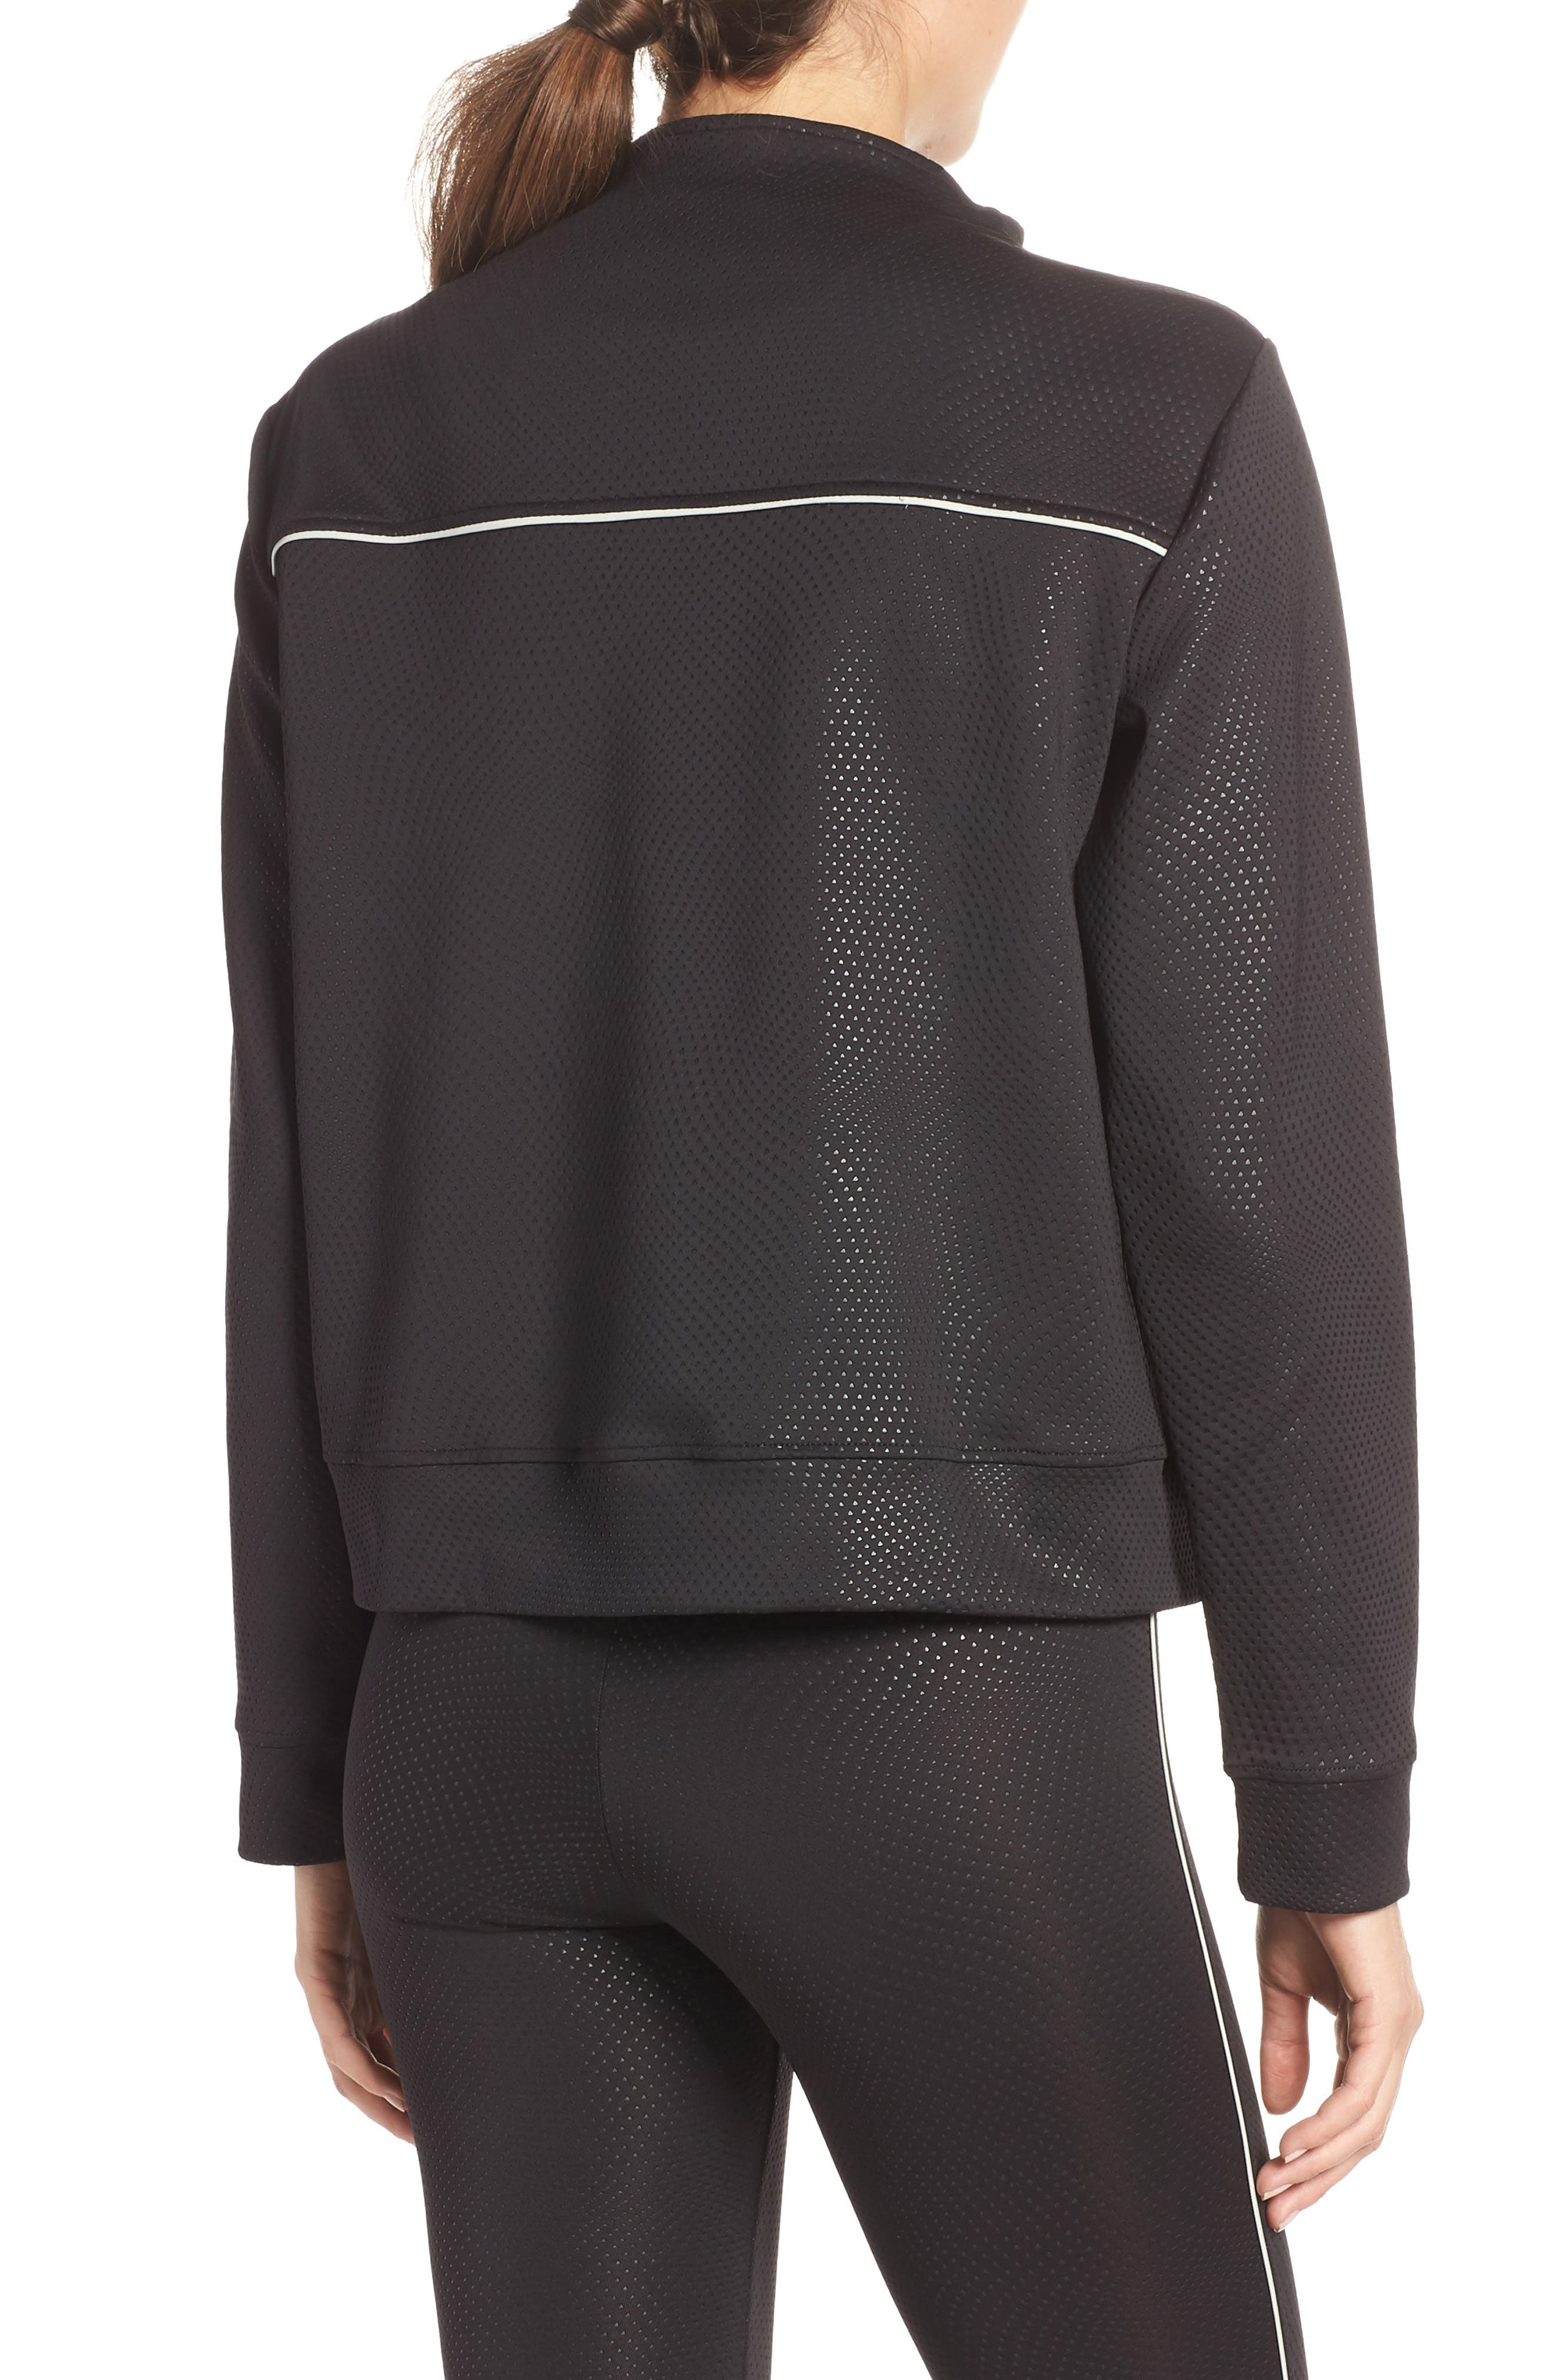 Kai Etch Half-Zip Sweatshirt,                             Alternate thumbnail 2, color,                             001